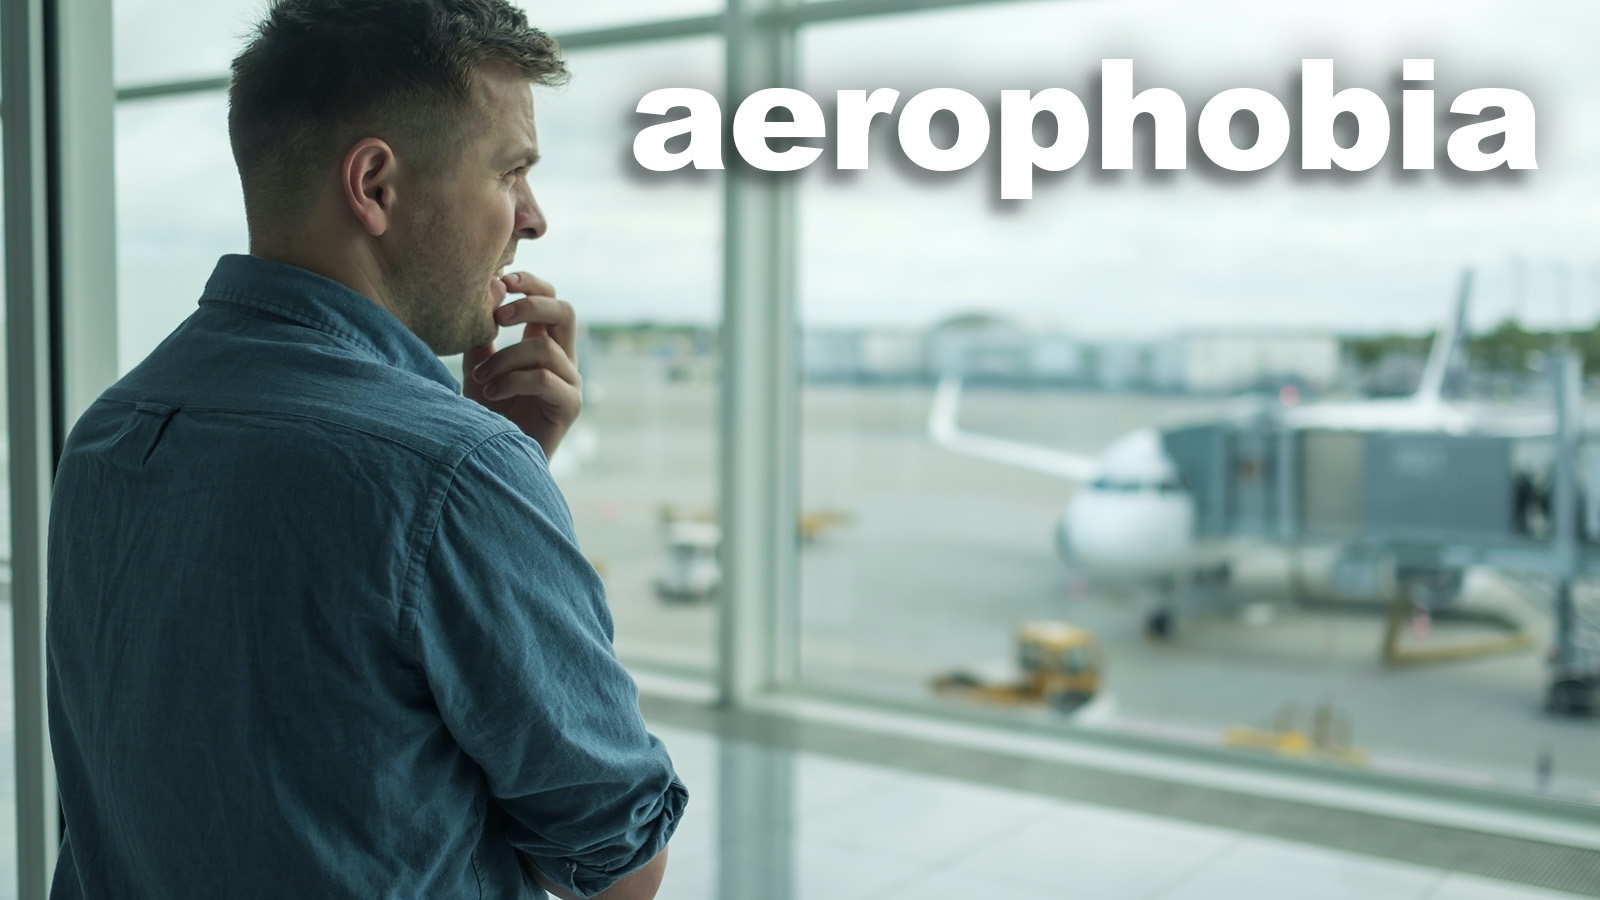 Man at airport with phobia of flying aerophobia